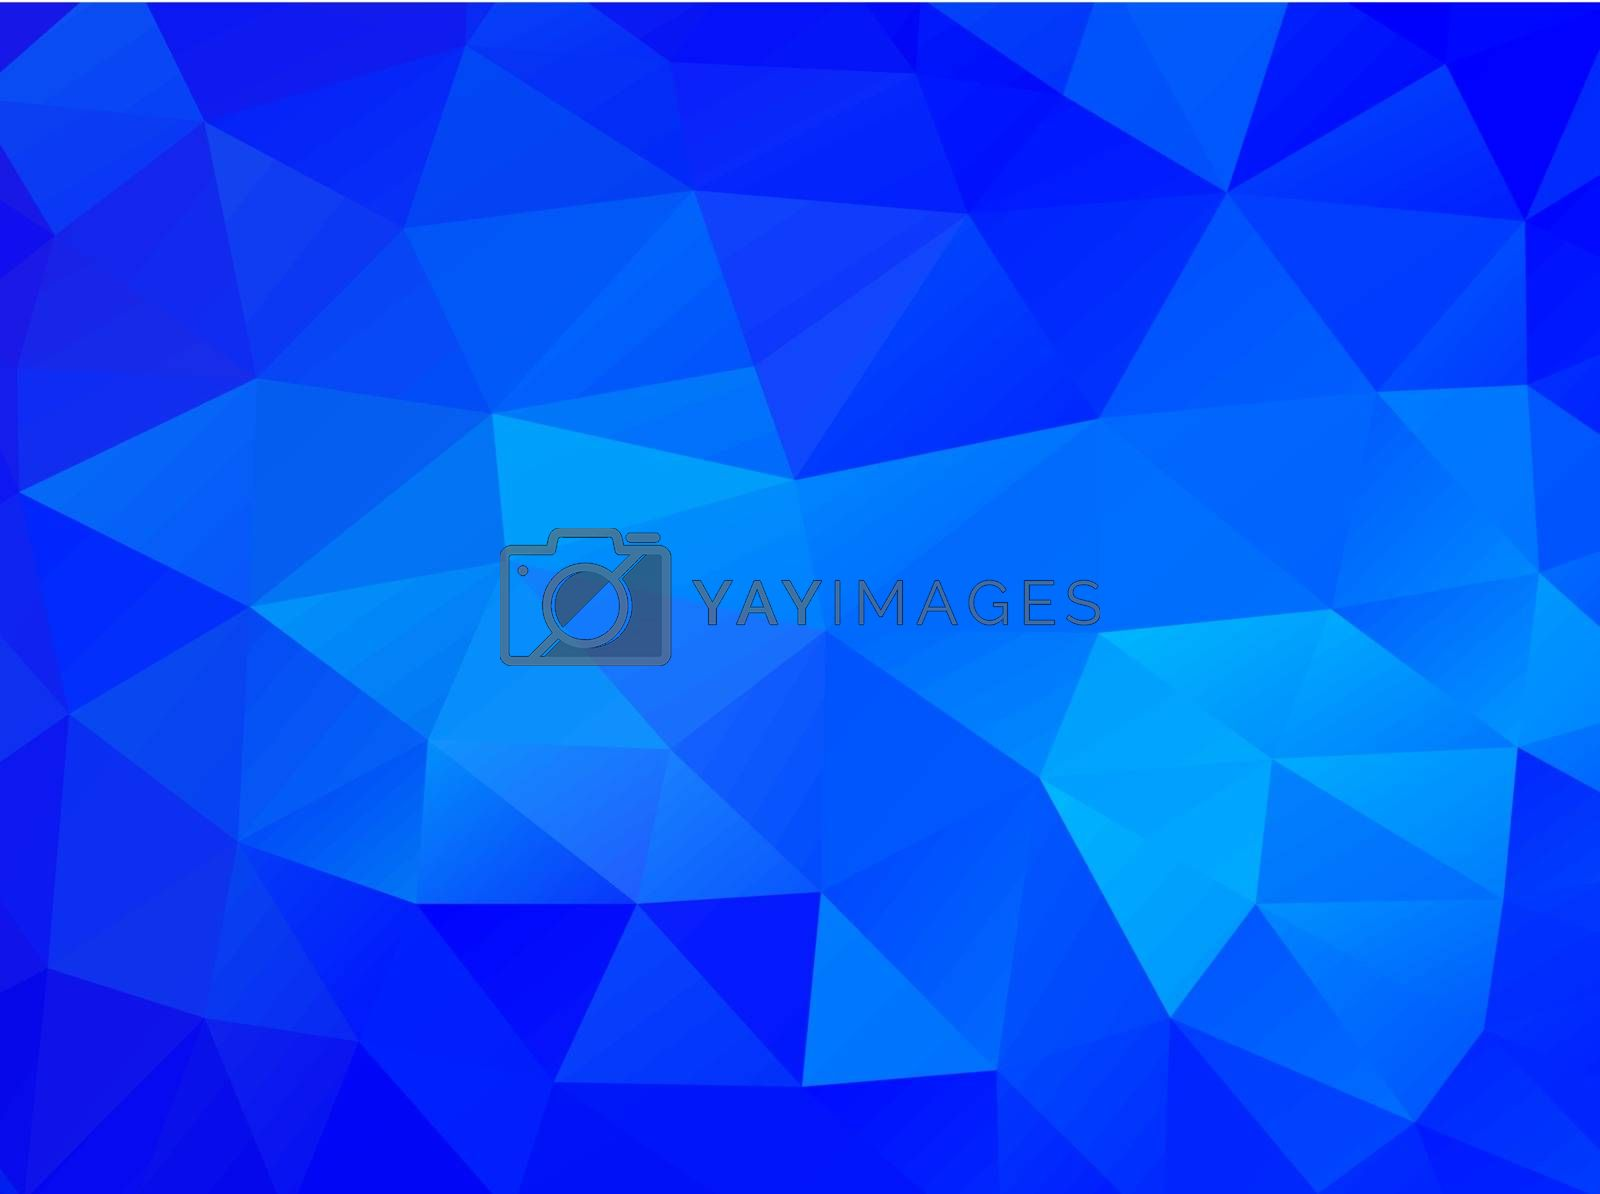 Triangle background. Blue polygons. Abstract background in modern style